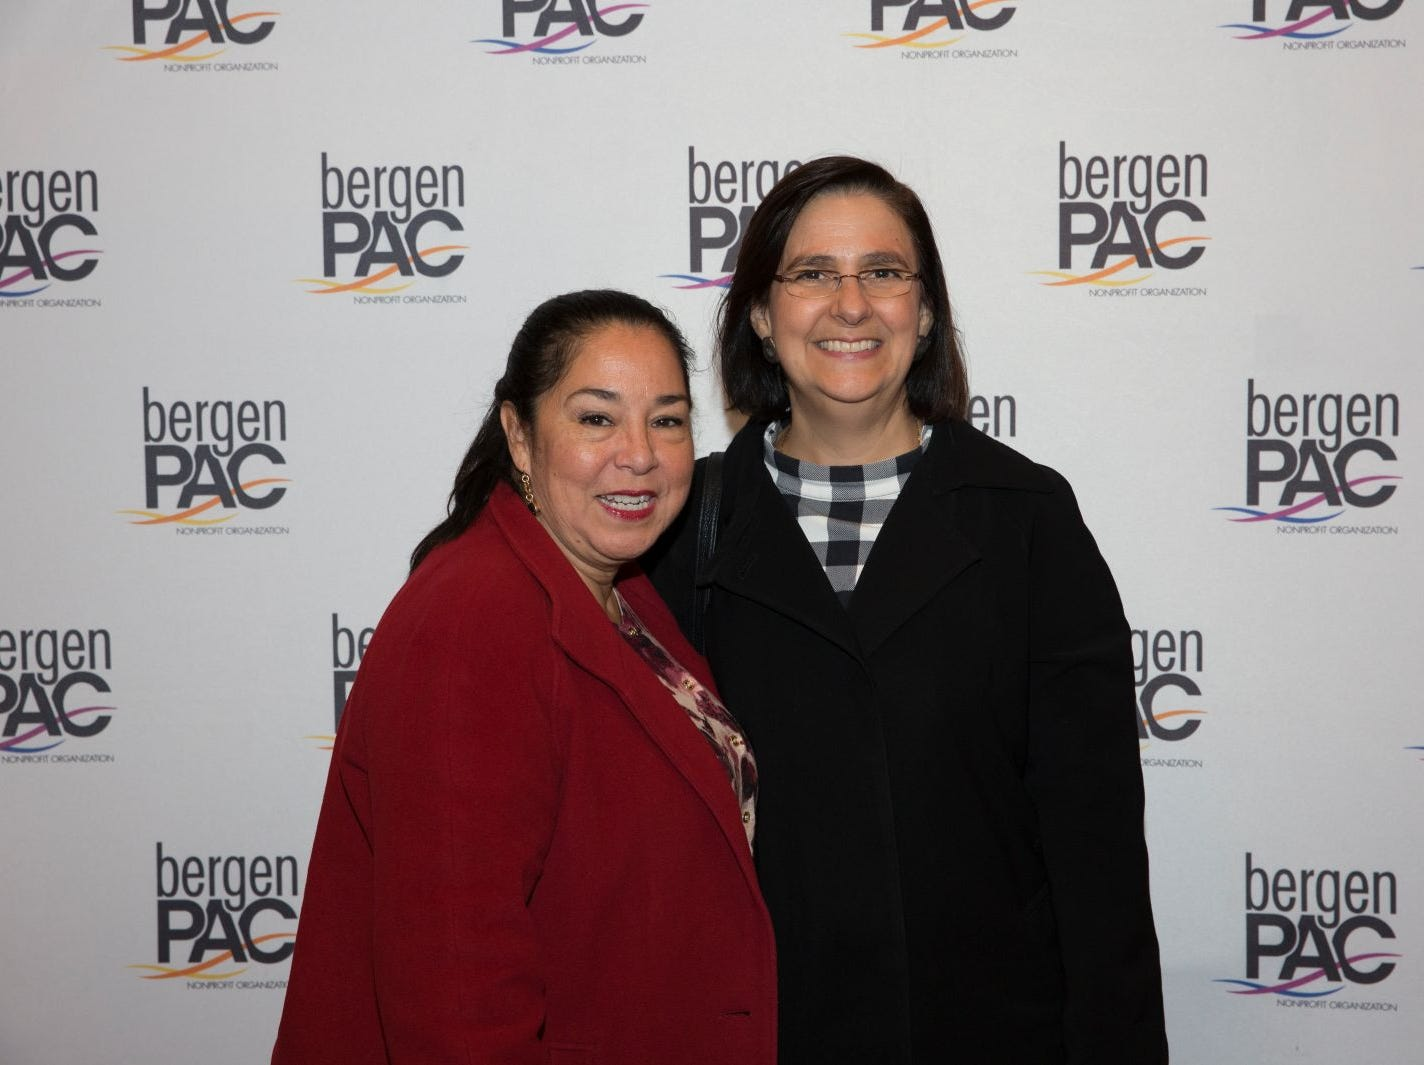 Francesca Di Bianco, Rebecca Vella. BergenPAC held its annual fall gala featuring John Fogerty in Englewood. This year's honoree was Fernando Garip, from Wilmington Trust and M&T Bank. 11/08/2018